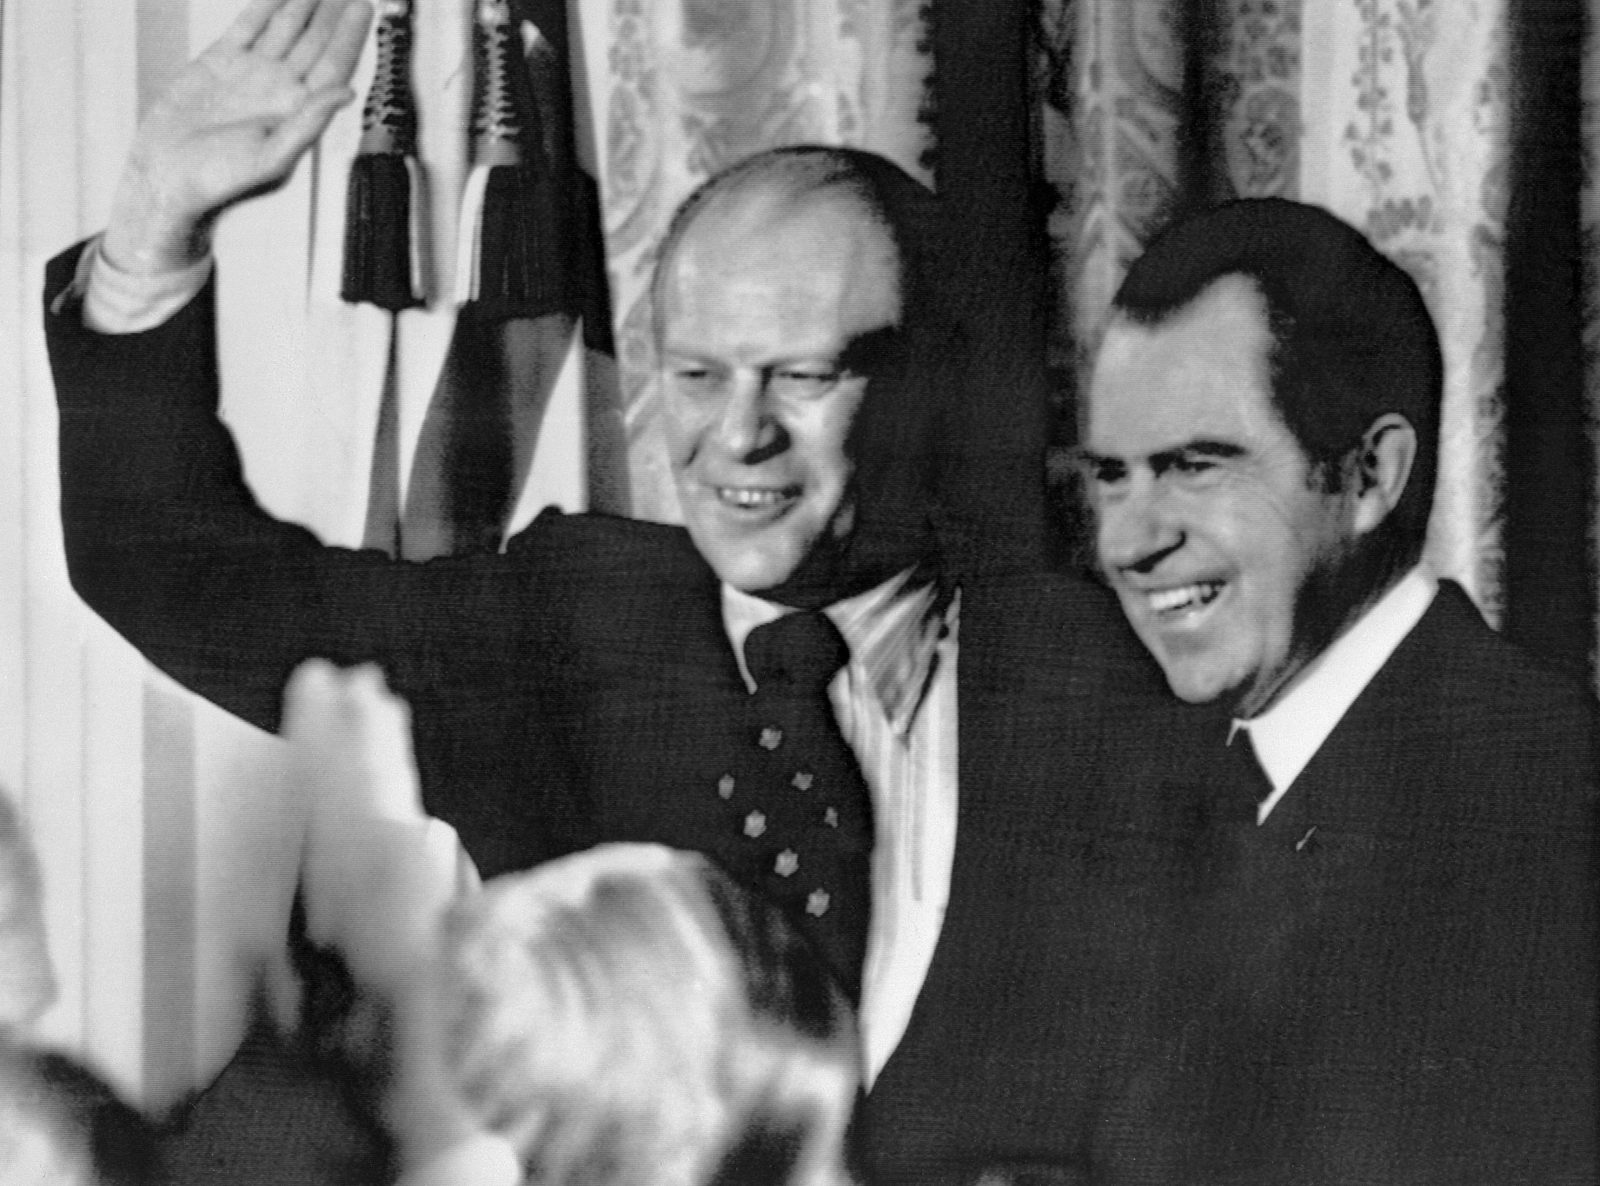 macbeth and richard nixon Richard m nixon has just resigned the united states presidency in total   macbeth washington post nails the political, media and cultural fever of that  era.